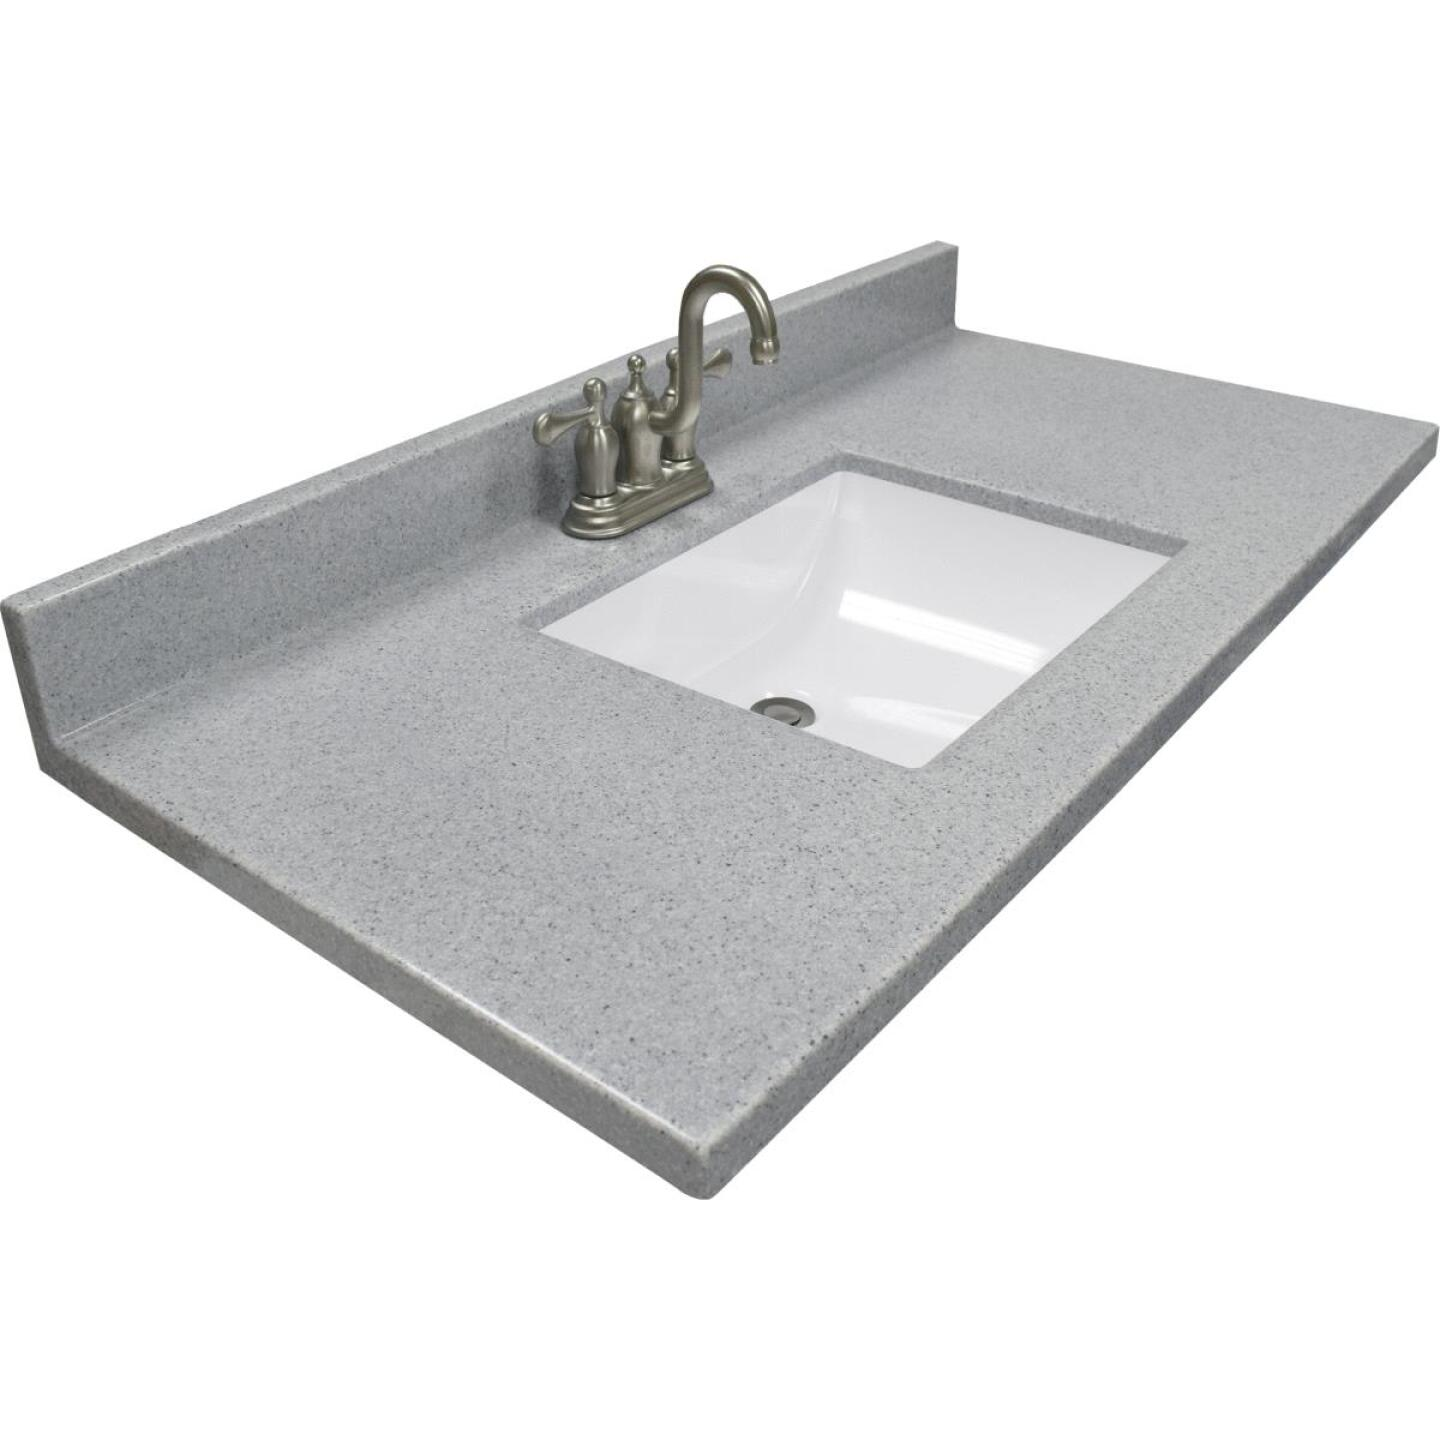 Modular Vanity Tops 37 In. W x 22 In. D Pewter Cultured Marble Vanity Top with Rectangular Wave Bowl Image 1